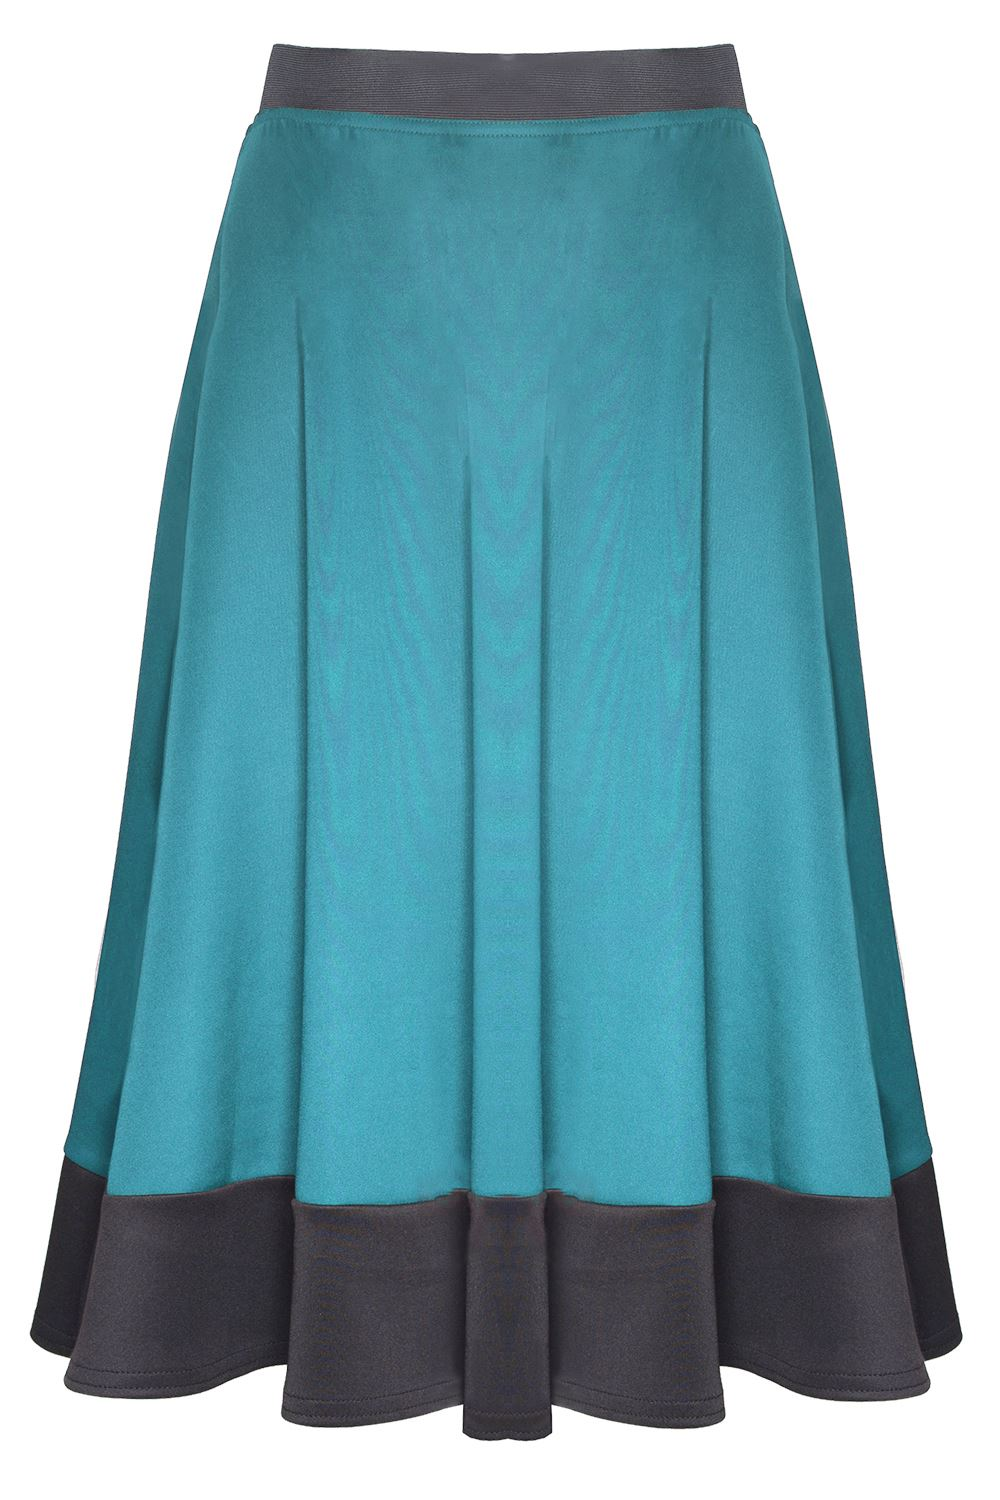 Original Pleated Skirt Is One Of Them Halston Heritage This Chiffon Mini Skirt